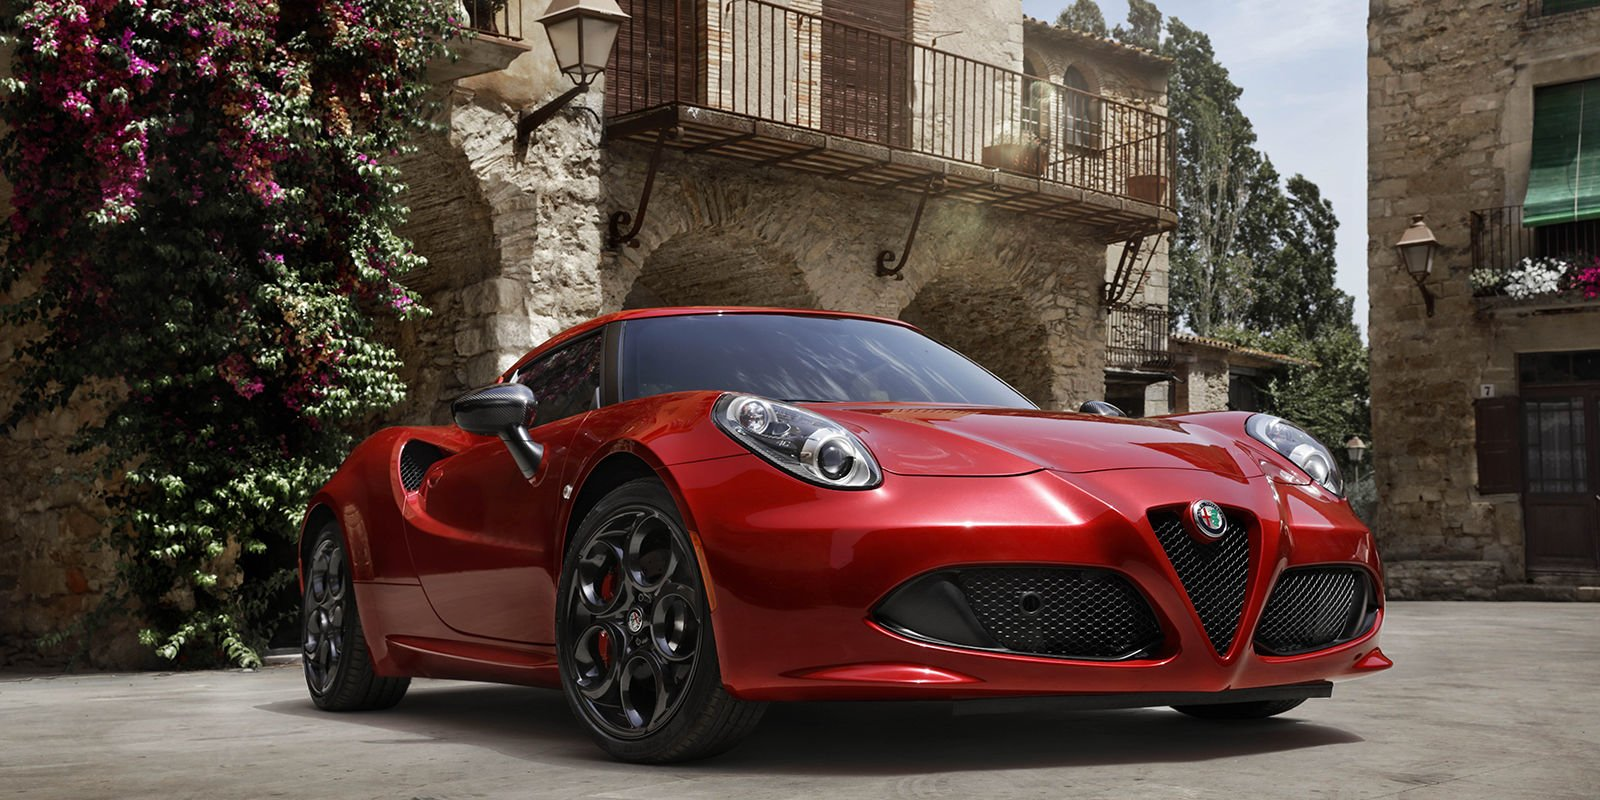 Alfa Romeo C Coupe Lease Deals Finance Prices Danvers MA - Price for alfa romeo 4c